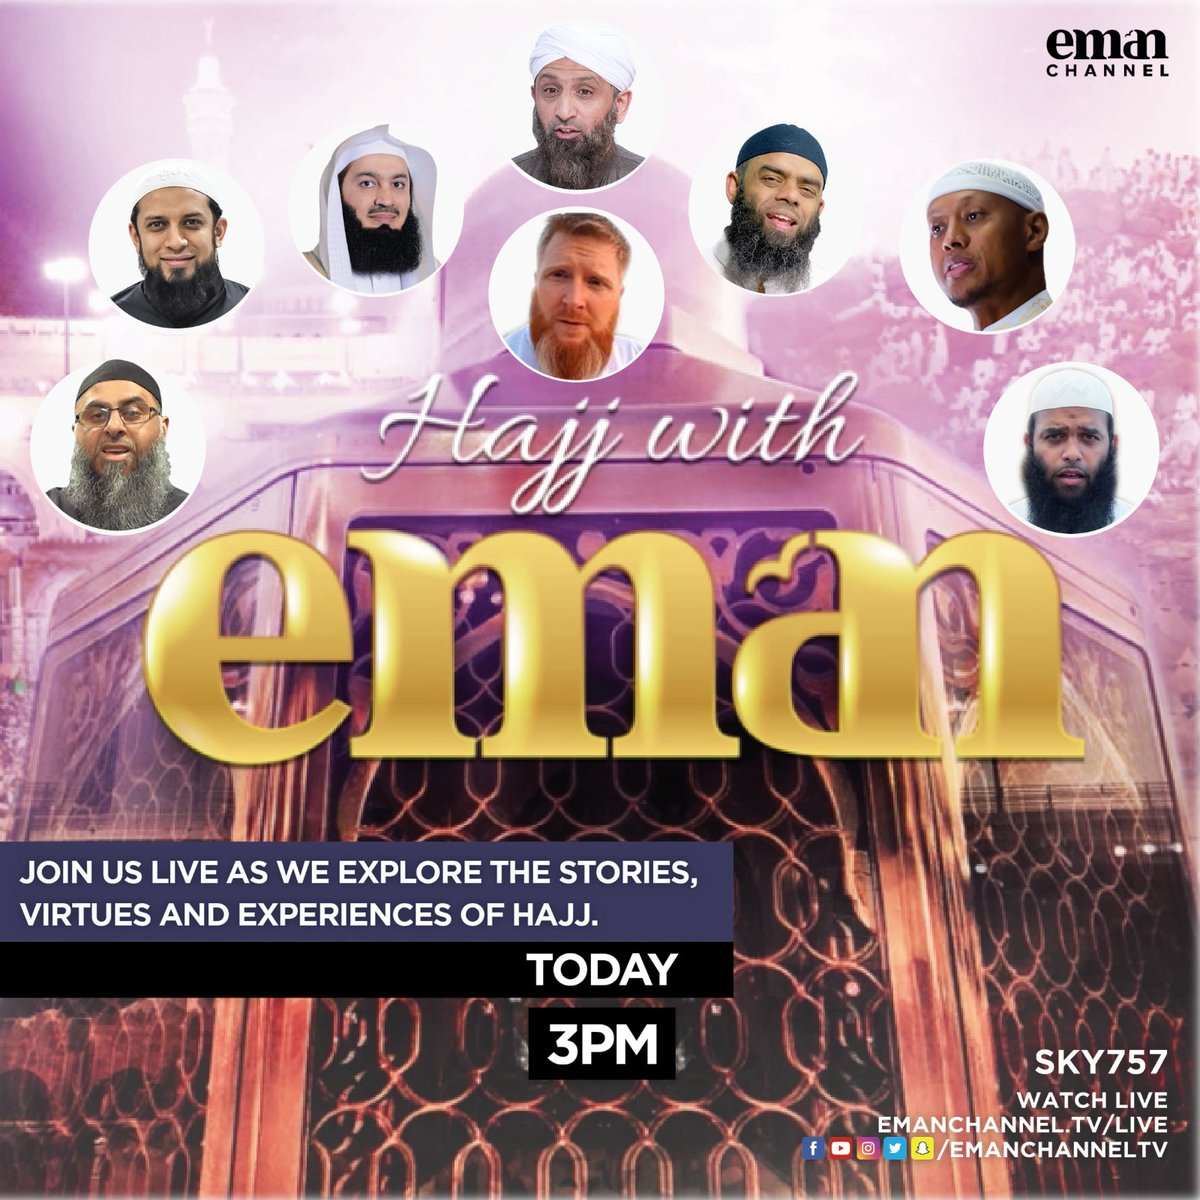 HAJJ WITH EMAN IS GOING LIVE FROM ARAFAH AT 3PM! LINK IN BIO https://t.co/jNpo1humhZ https://t.co/WNIiKvHyJF